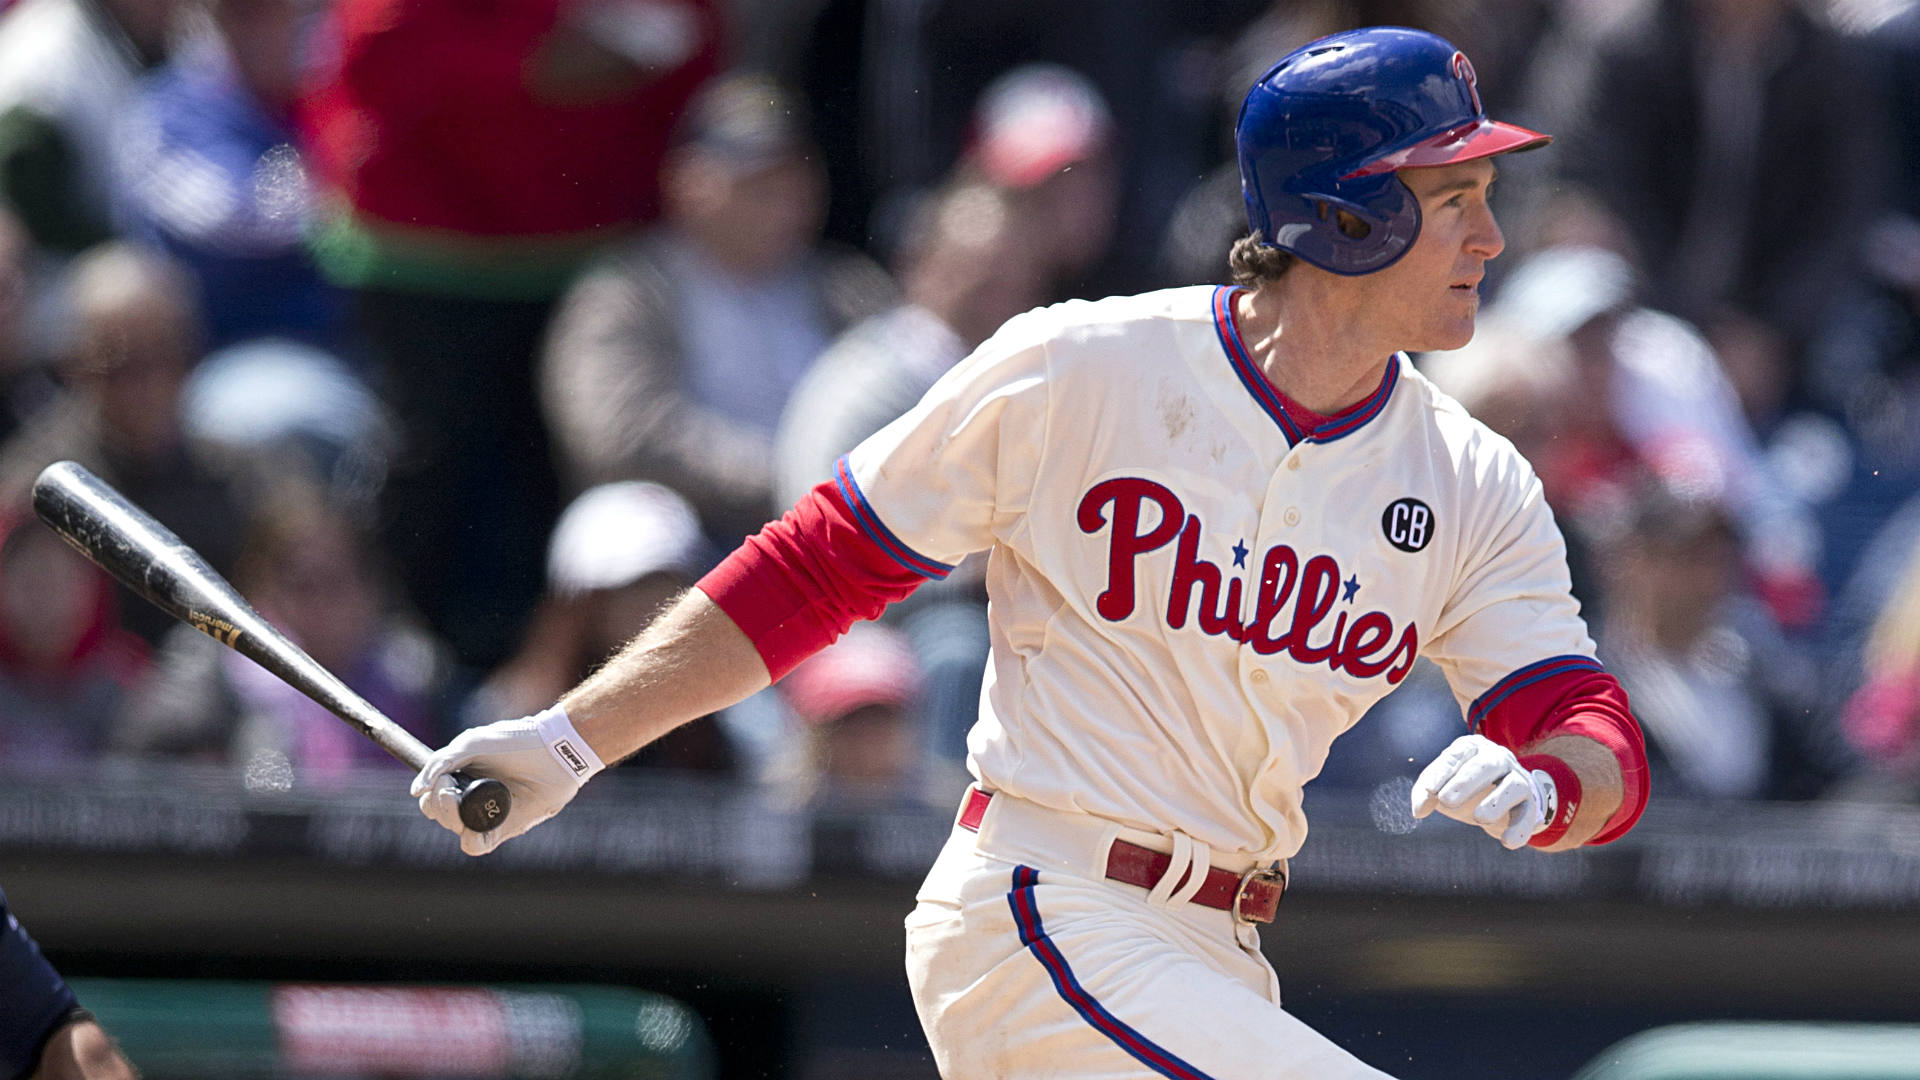 Here's why Chase Utley should be elected to the Baseball Hall of Fame